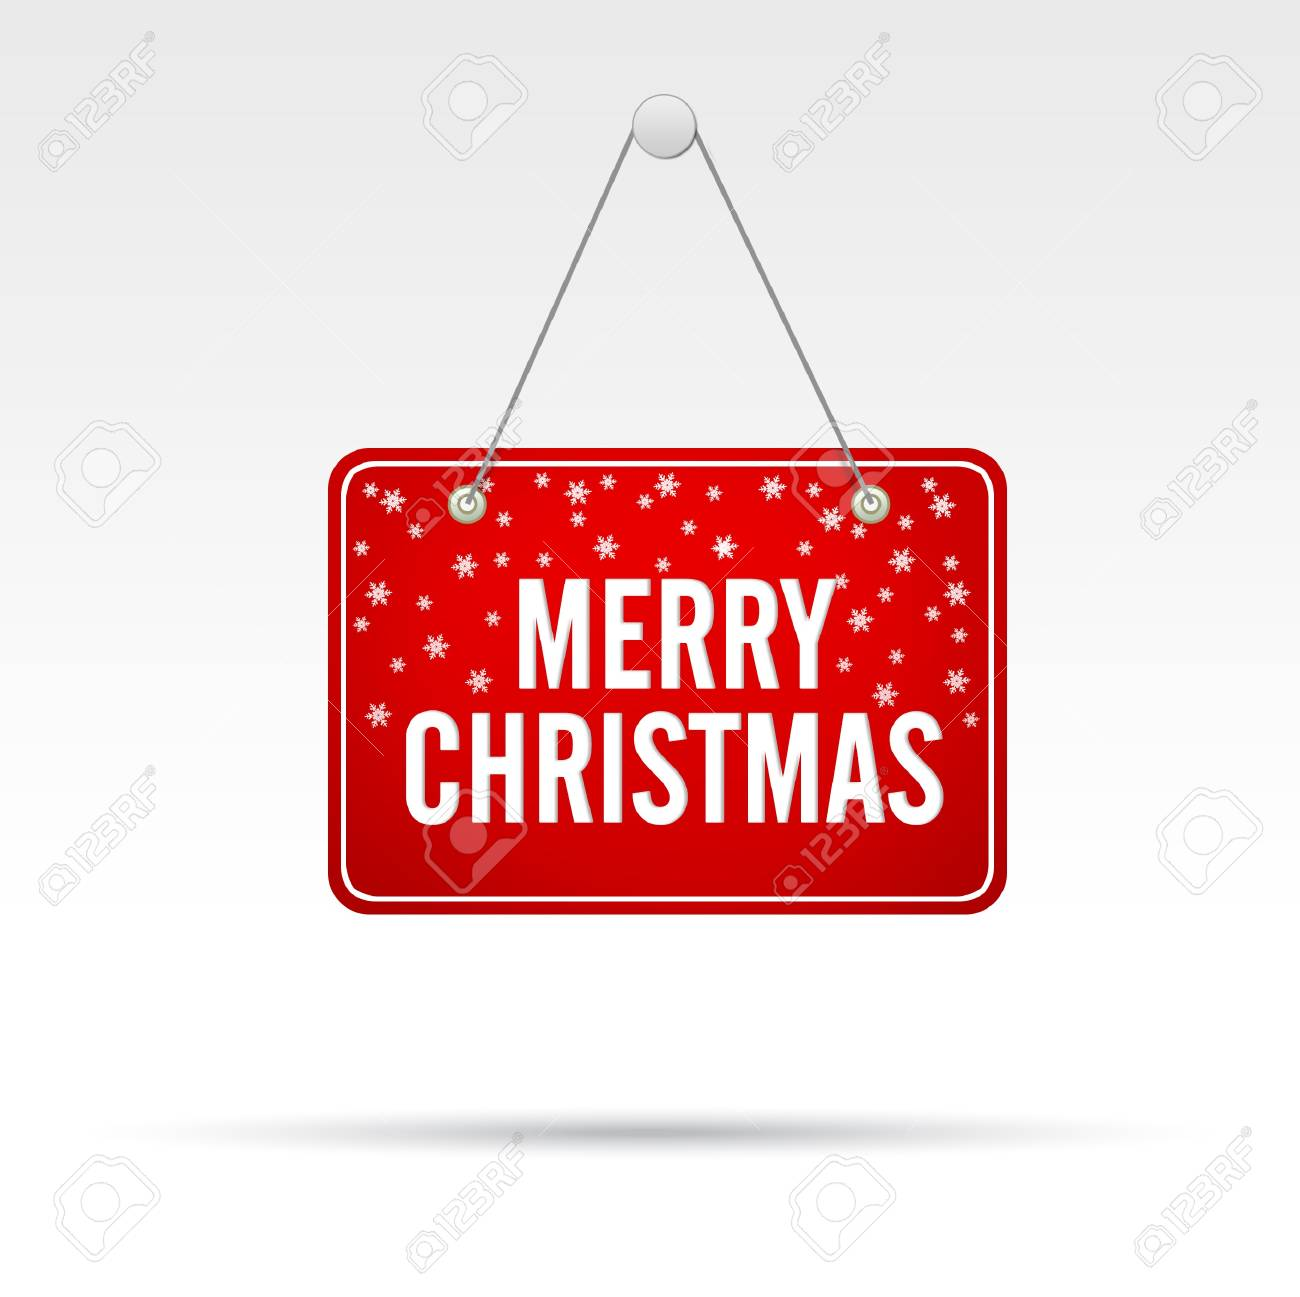 Merry Christmas Store Sign Stock Photo